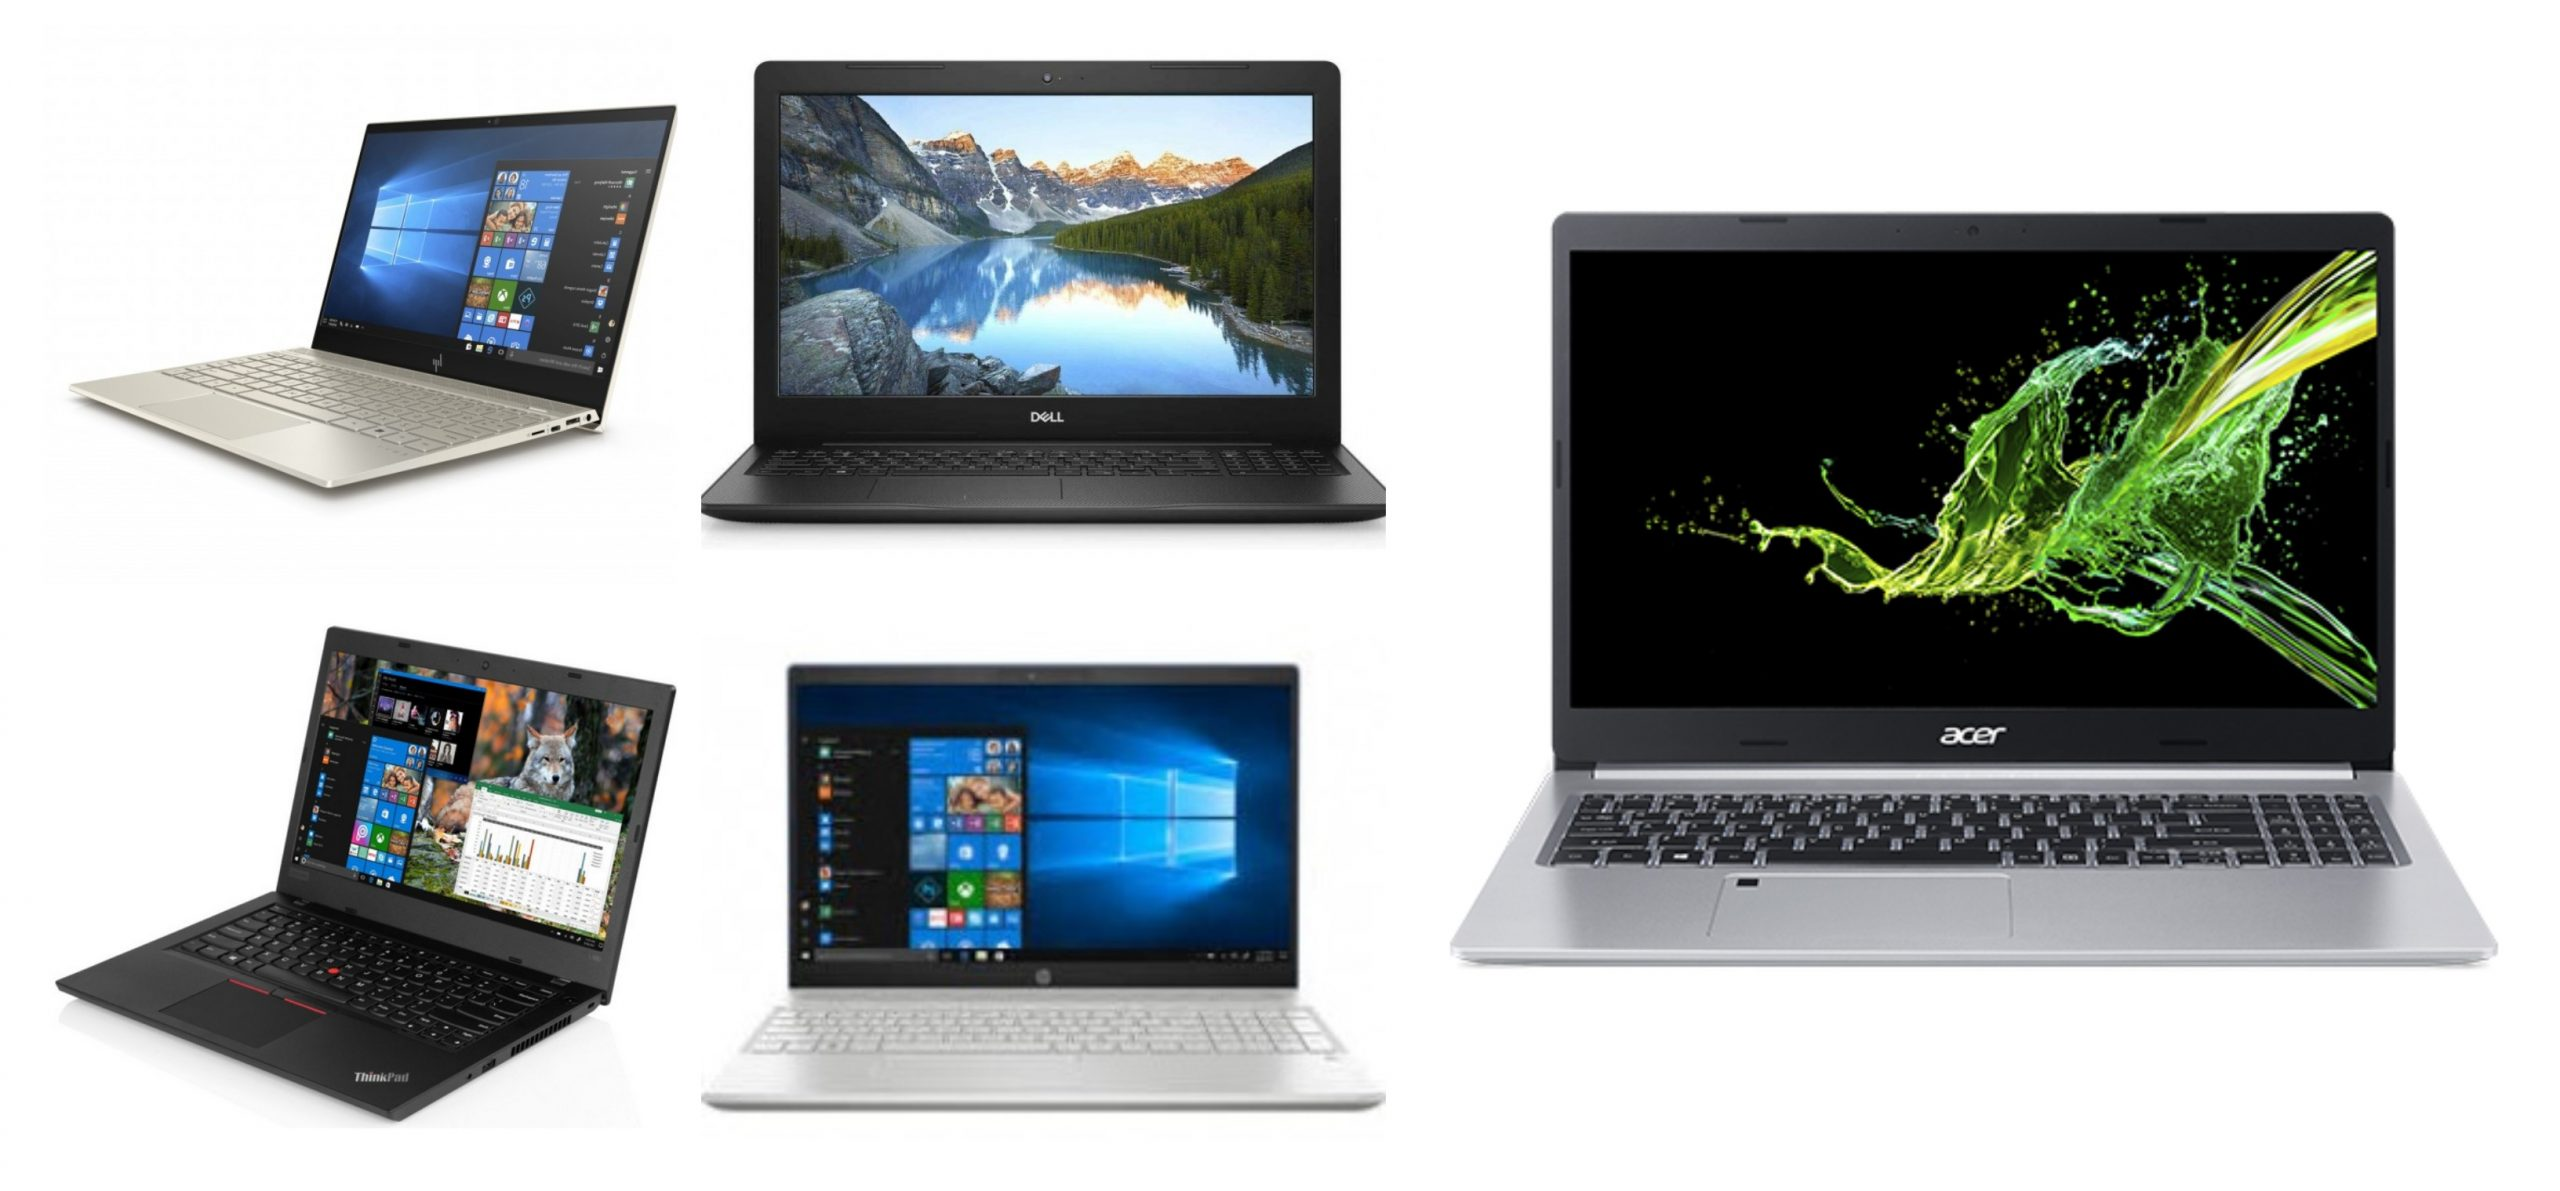 Top 5 Laptops for Students  In Budget Under 80,000 In Nepal